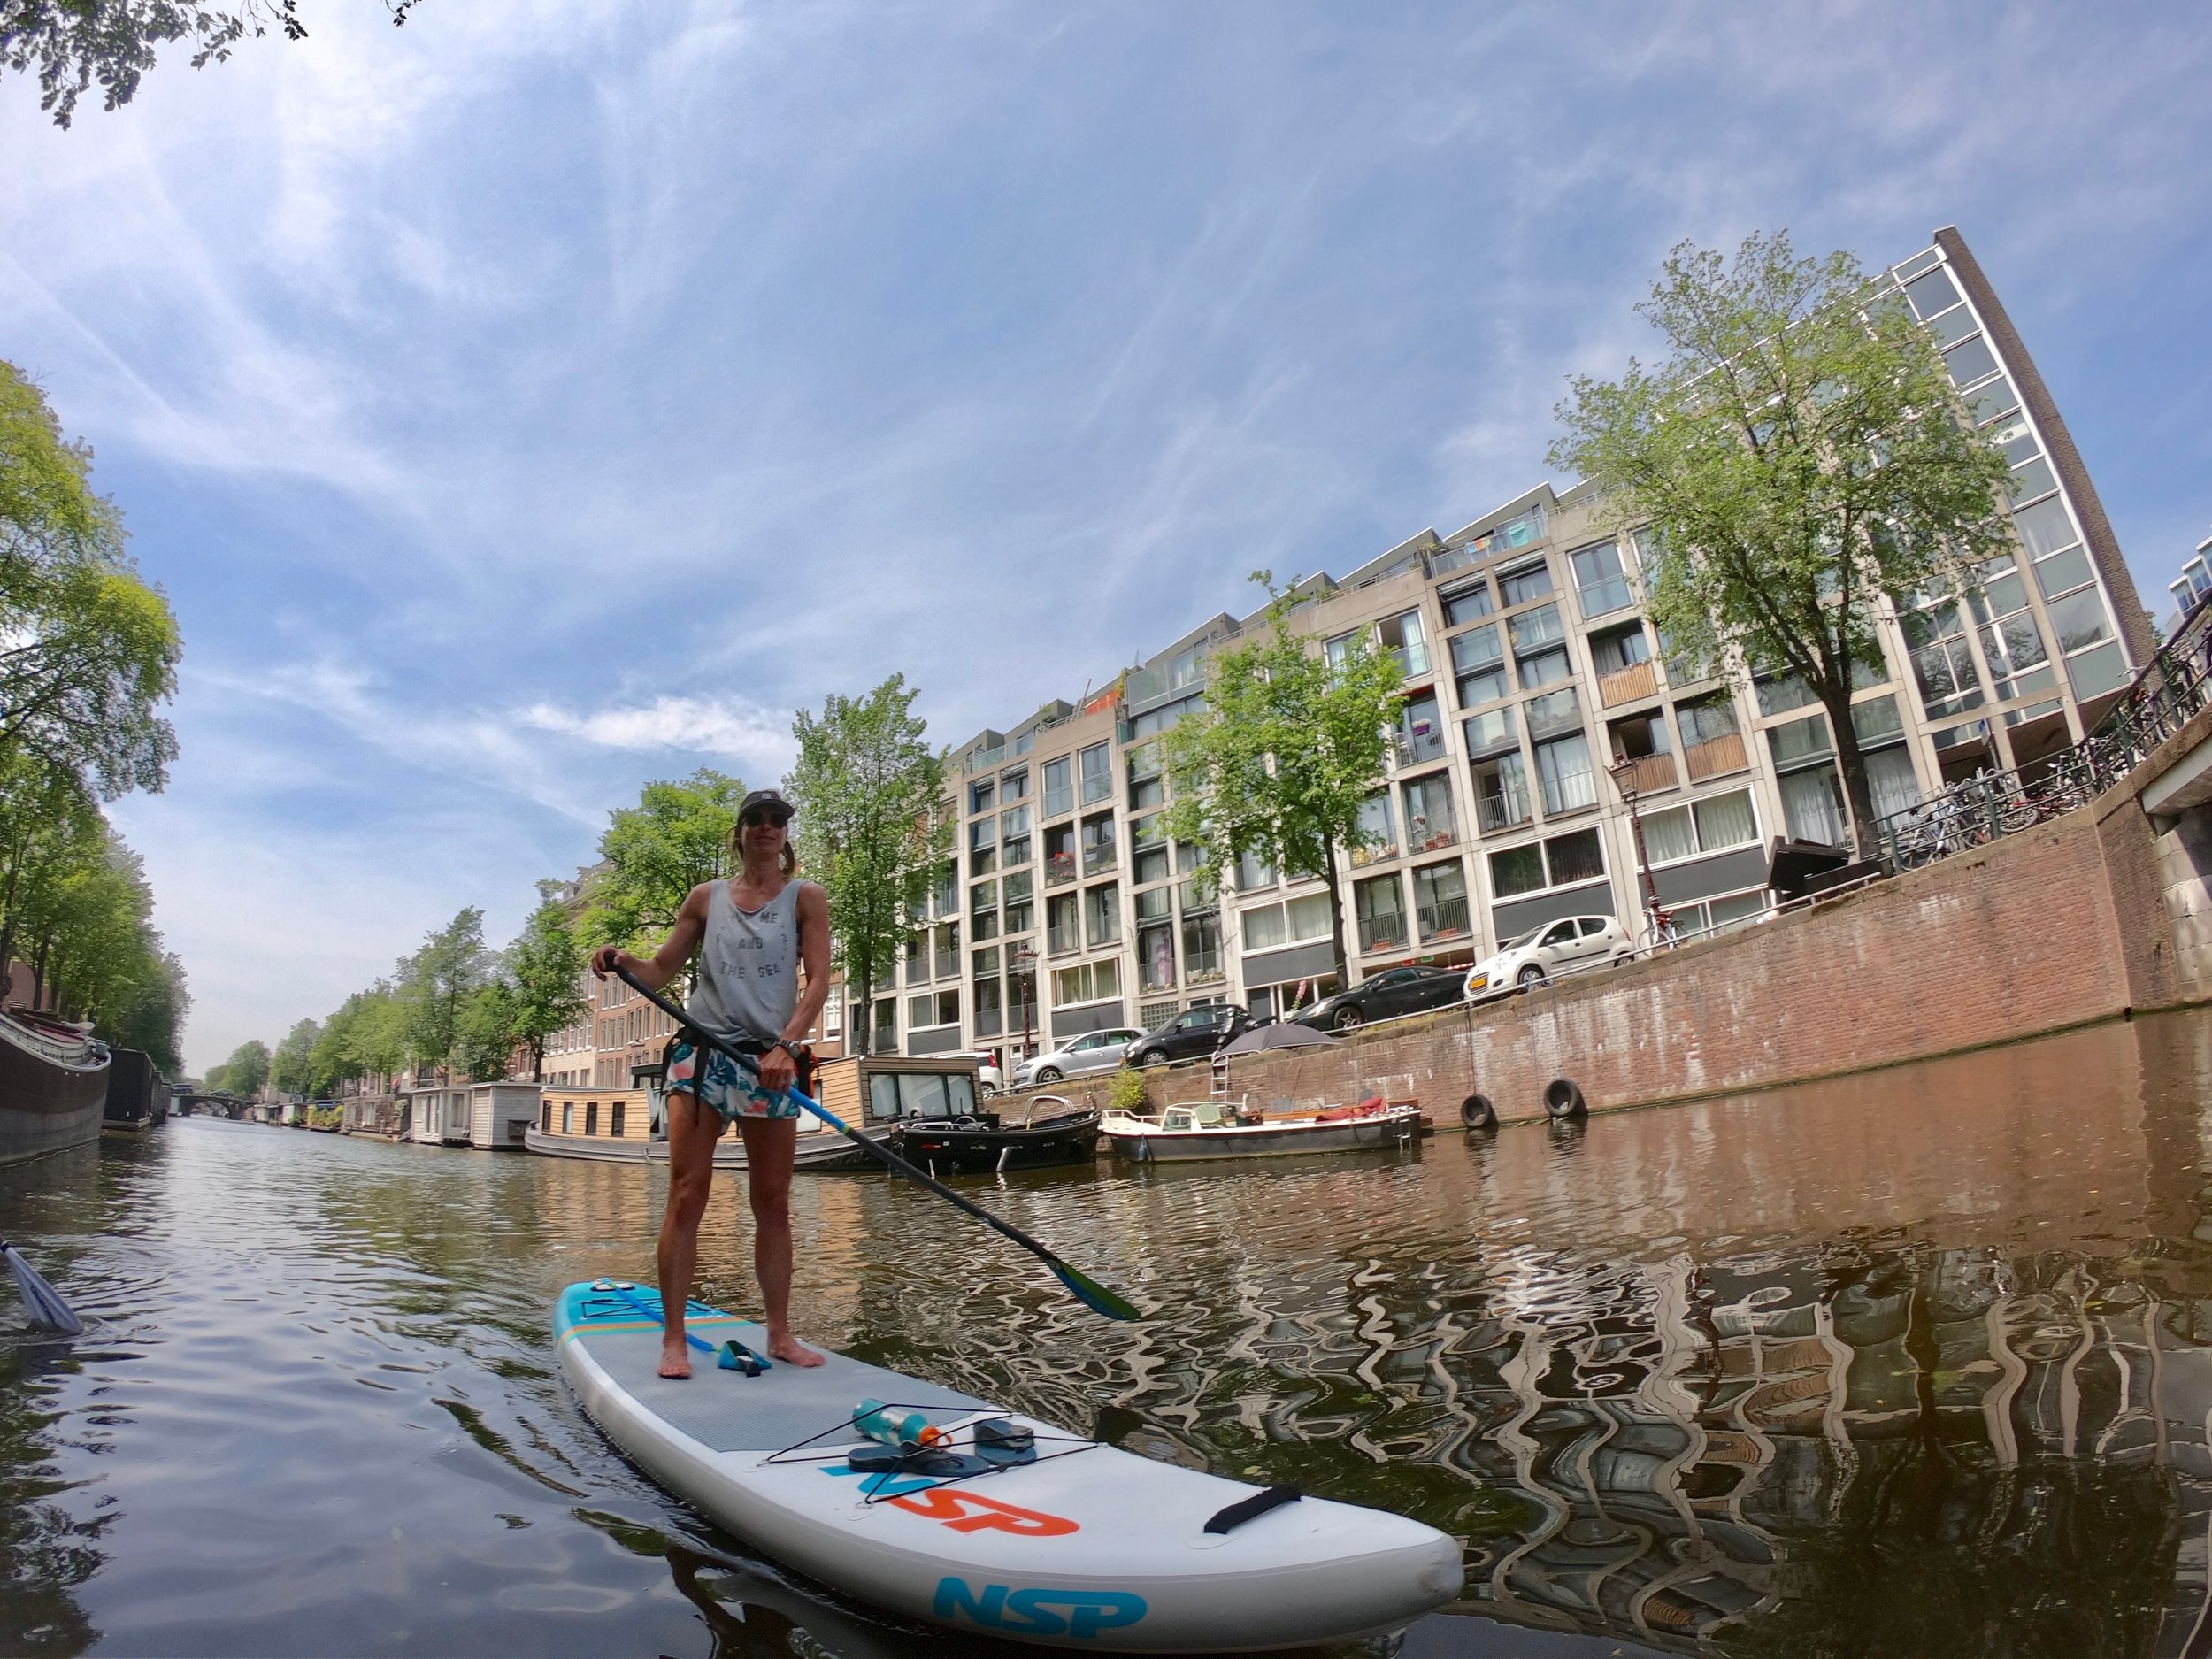 BUY YOUR OWN PADDLE BOARD AT OUR SUPCENTER!